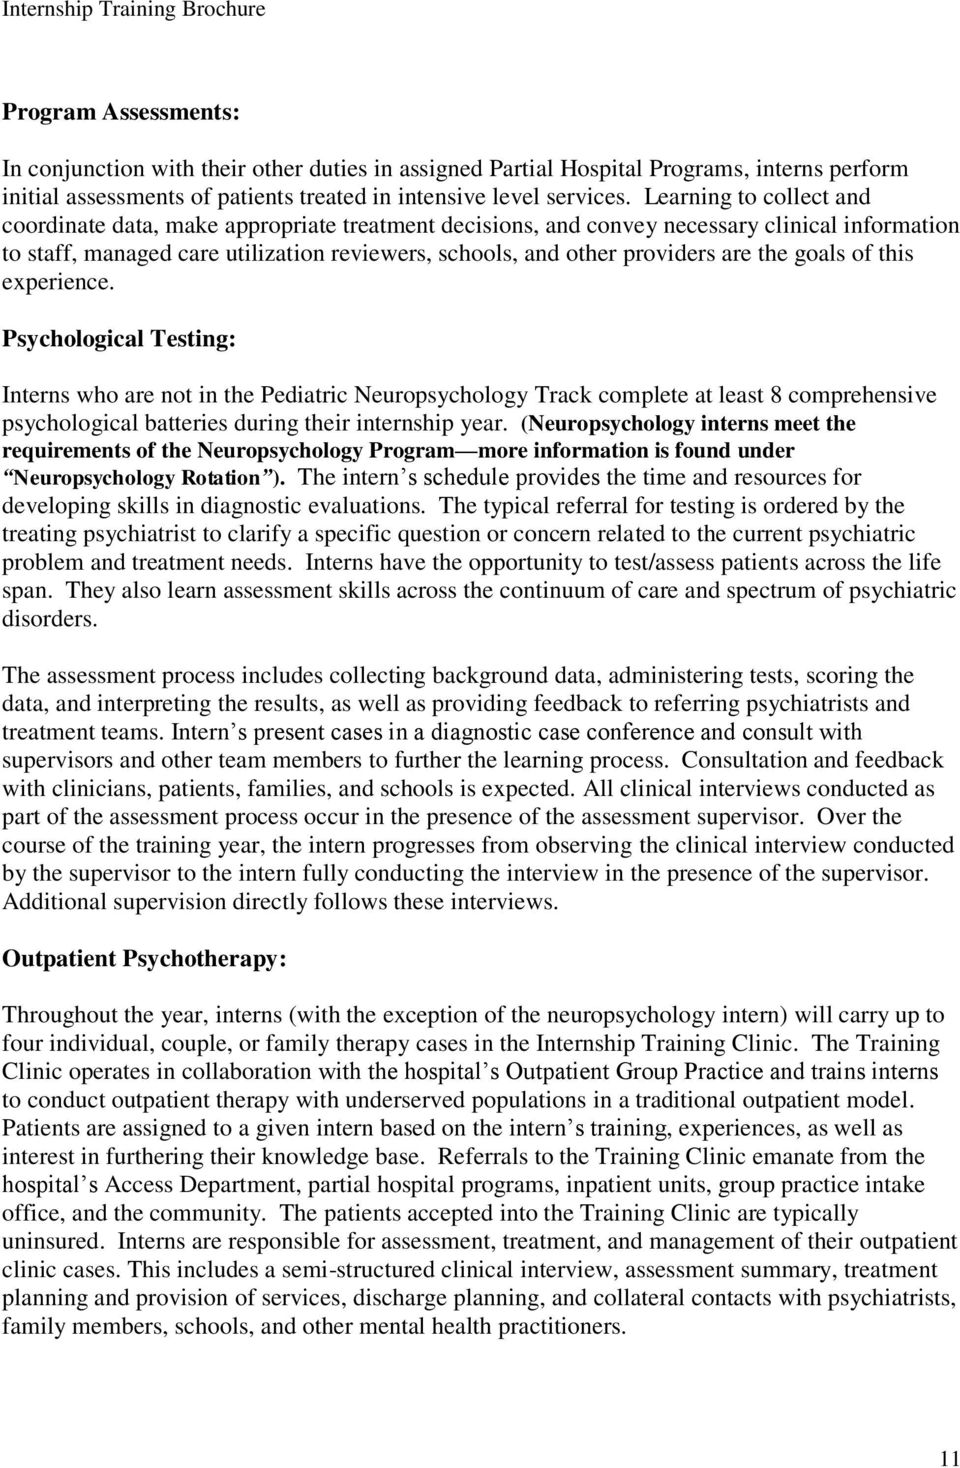 the goals of this experience. Psychological Testing: Interns who are not in the Pediatric Neuropsychology Track complete at least 8 comprehensive psychological batteries during their internship year.